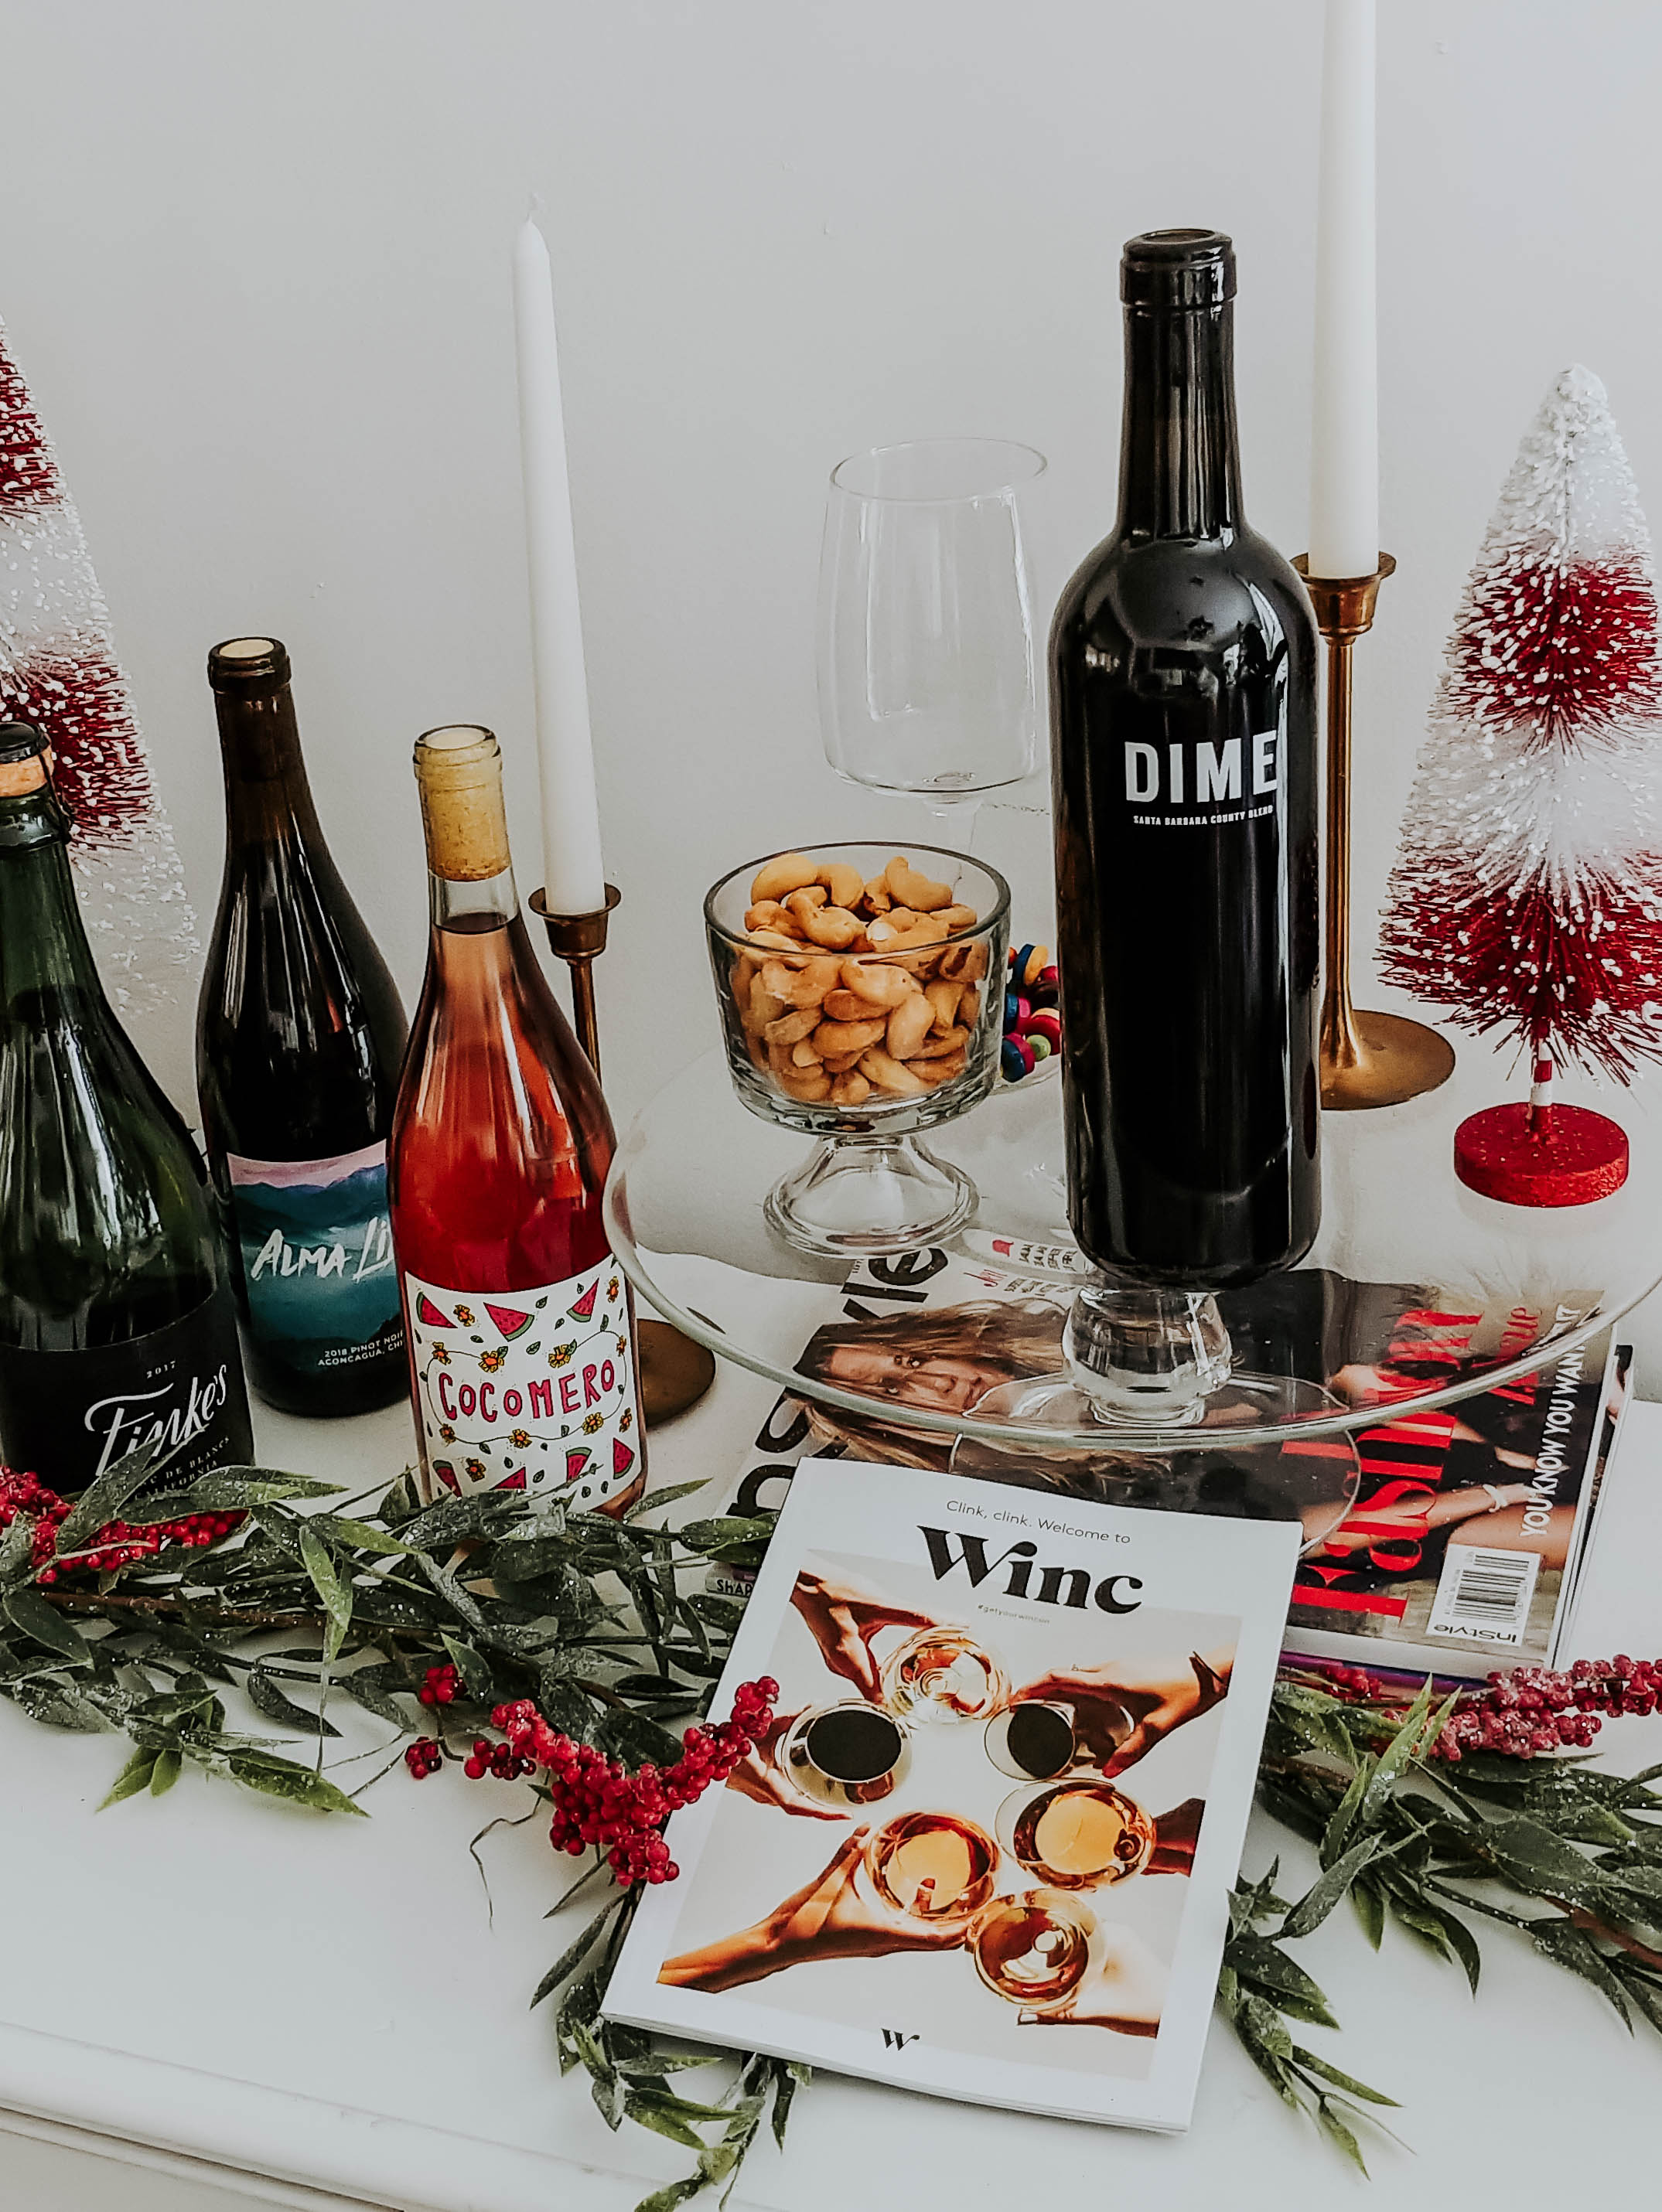 Image of different bottles of wine from winc.com.